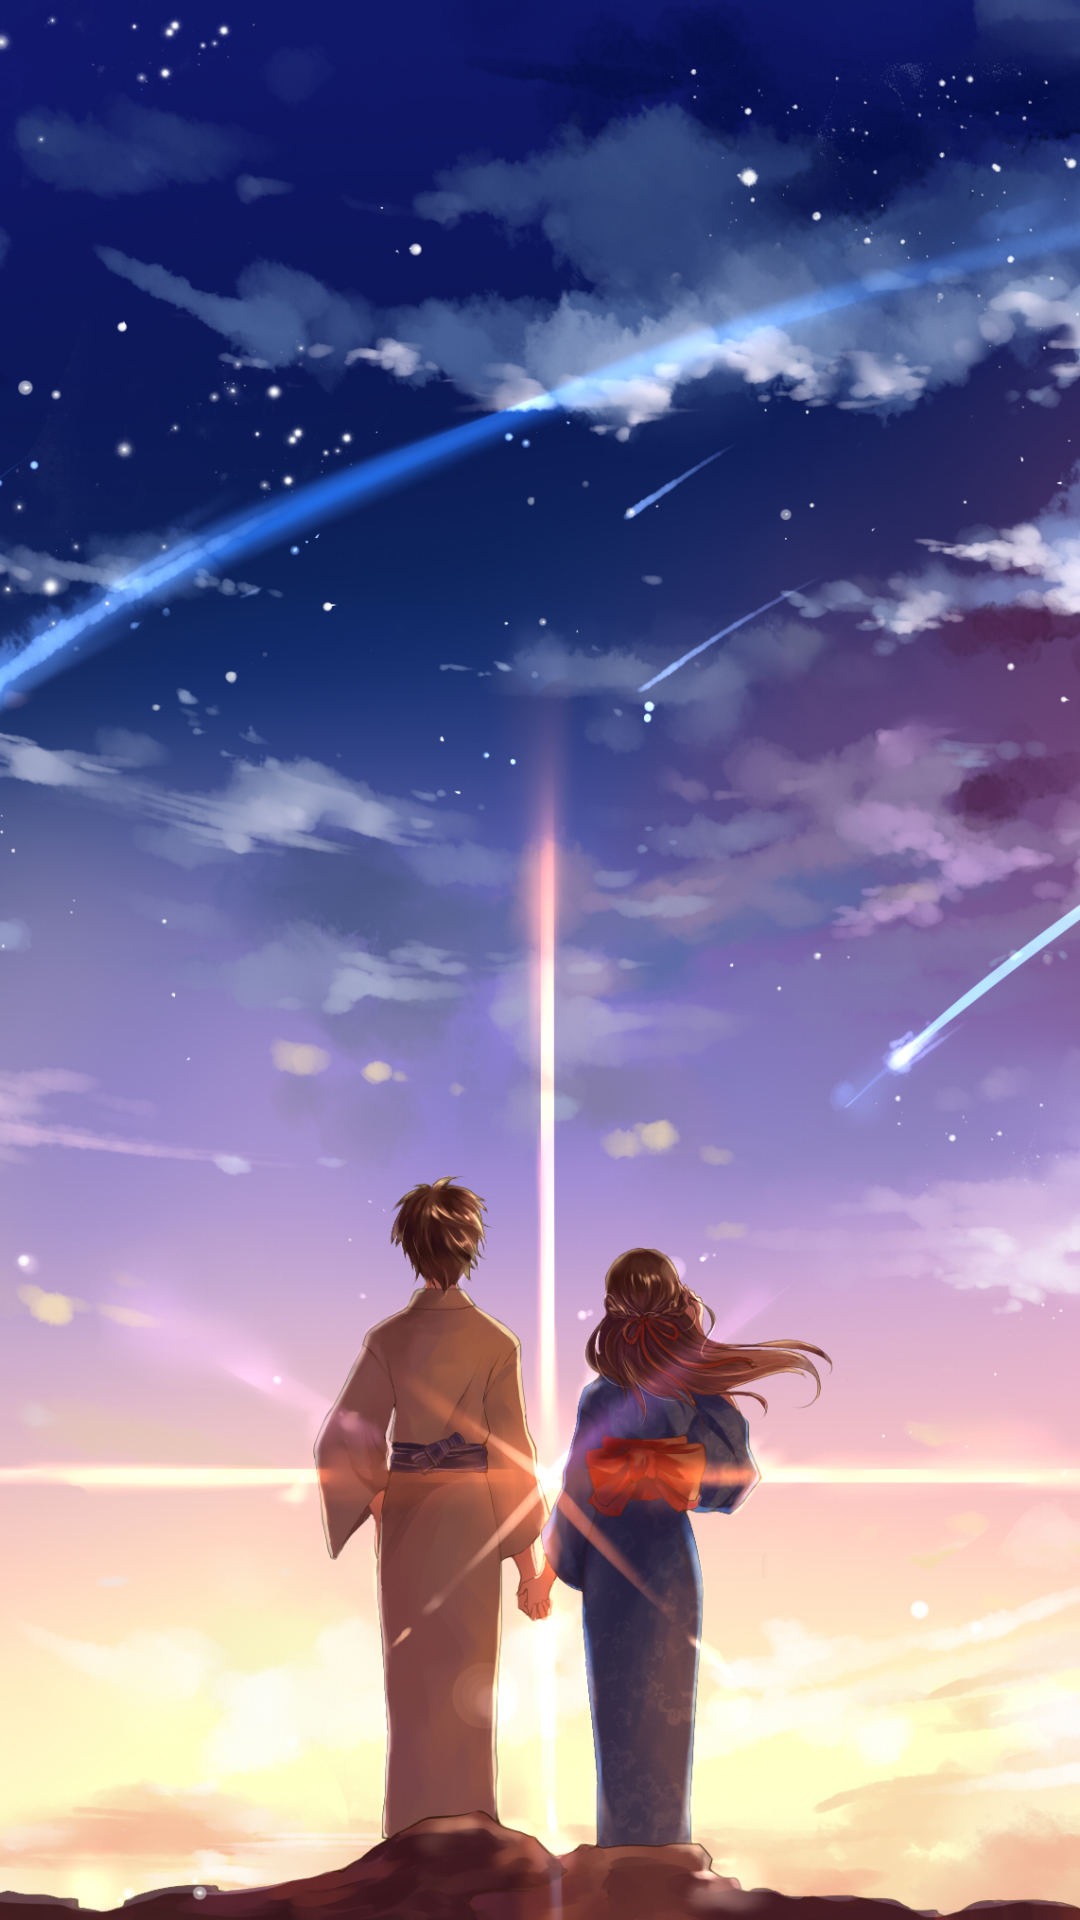 98 Kimi No Na Wa Apple Iphone 7 Plus 1080x1920 Wallpapers